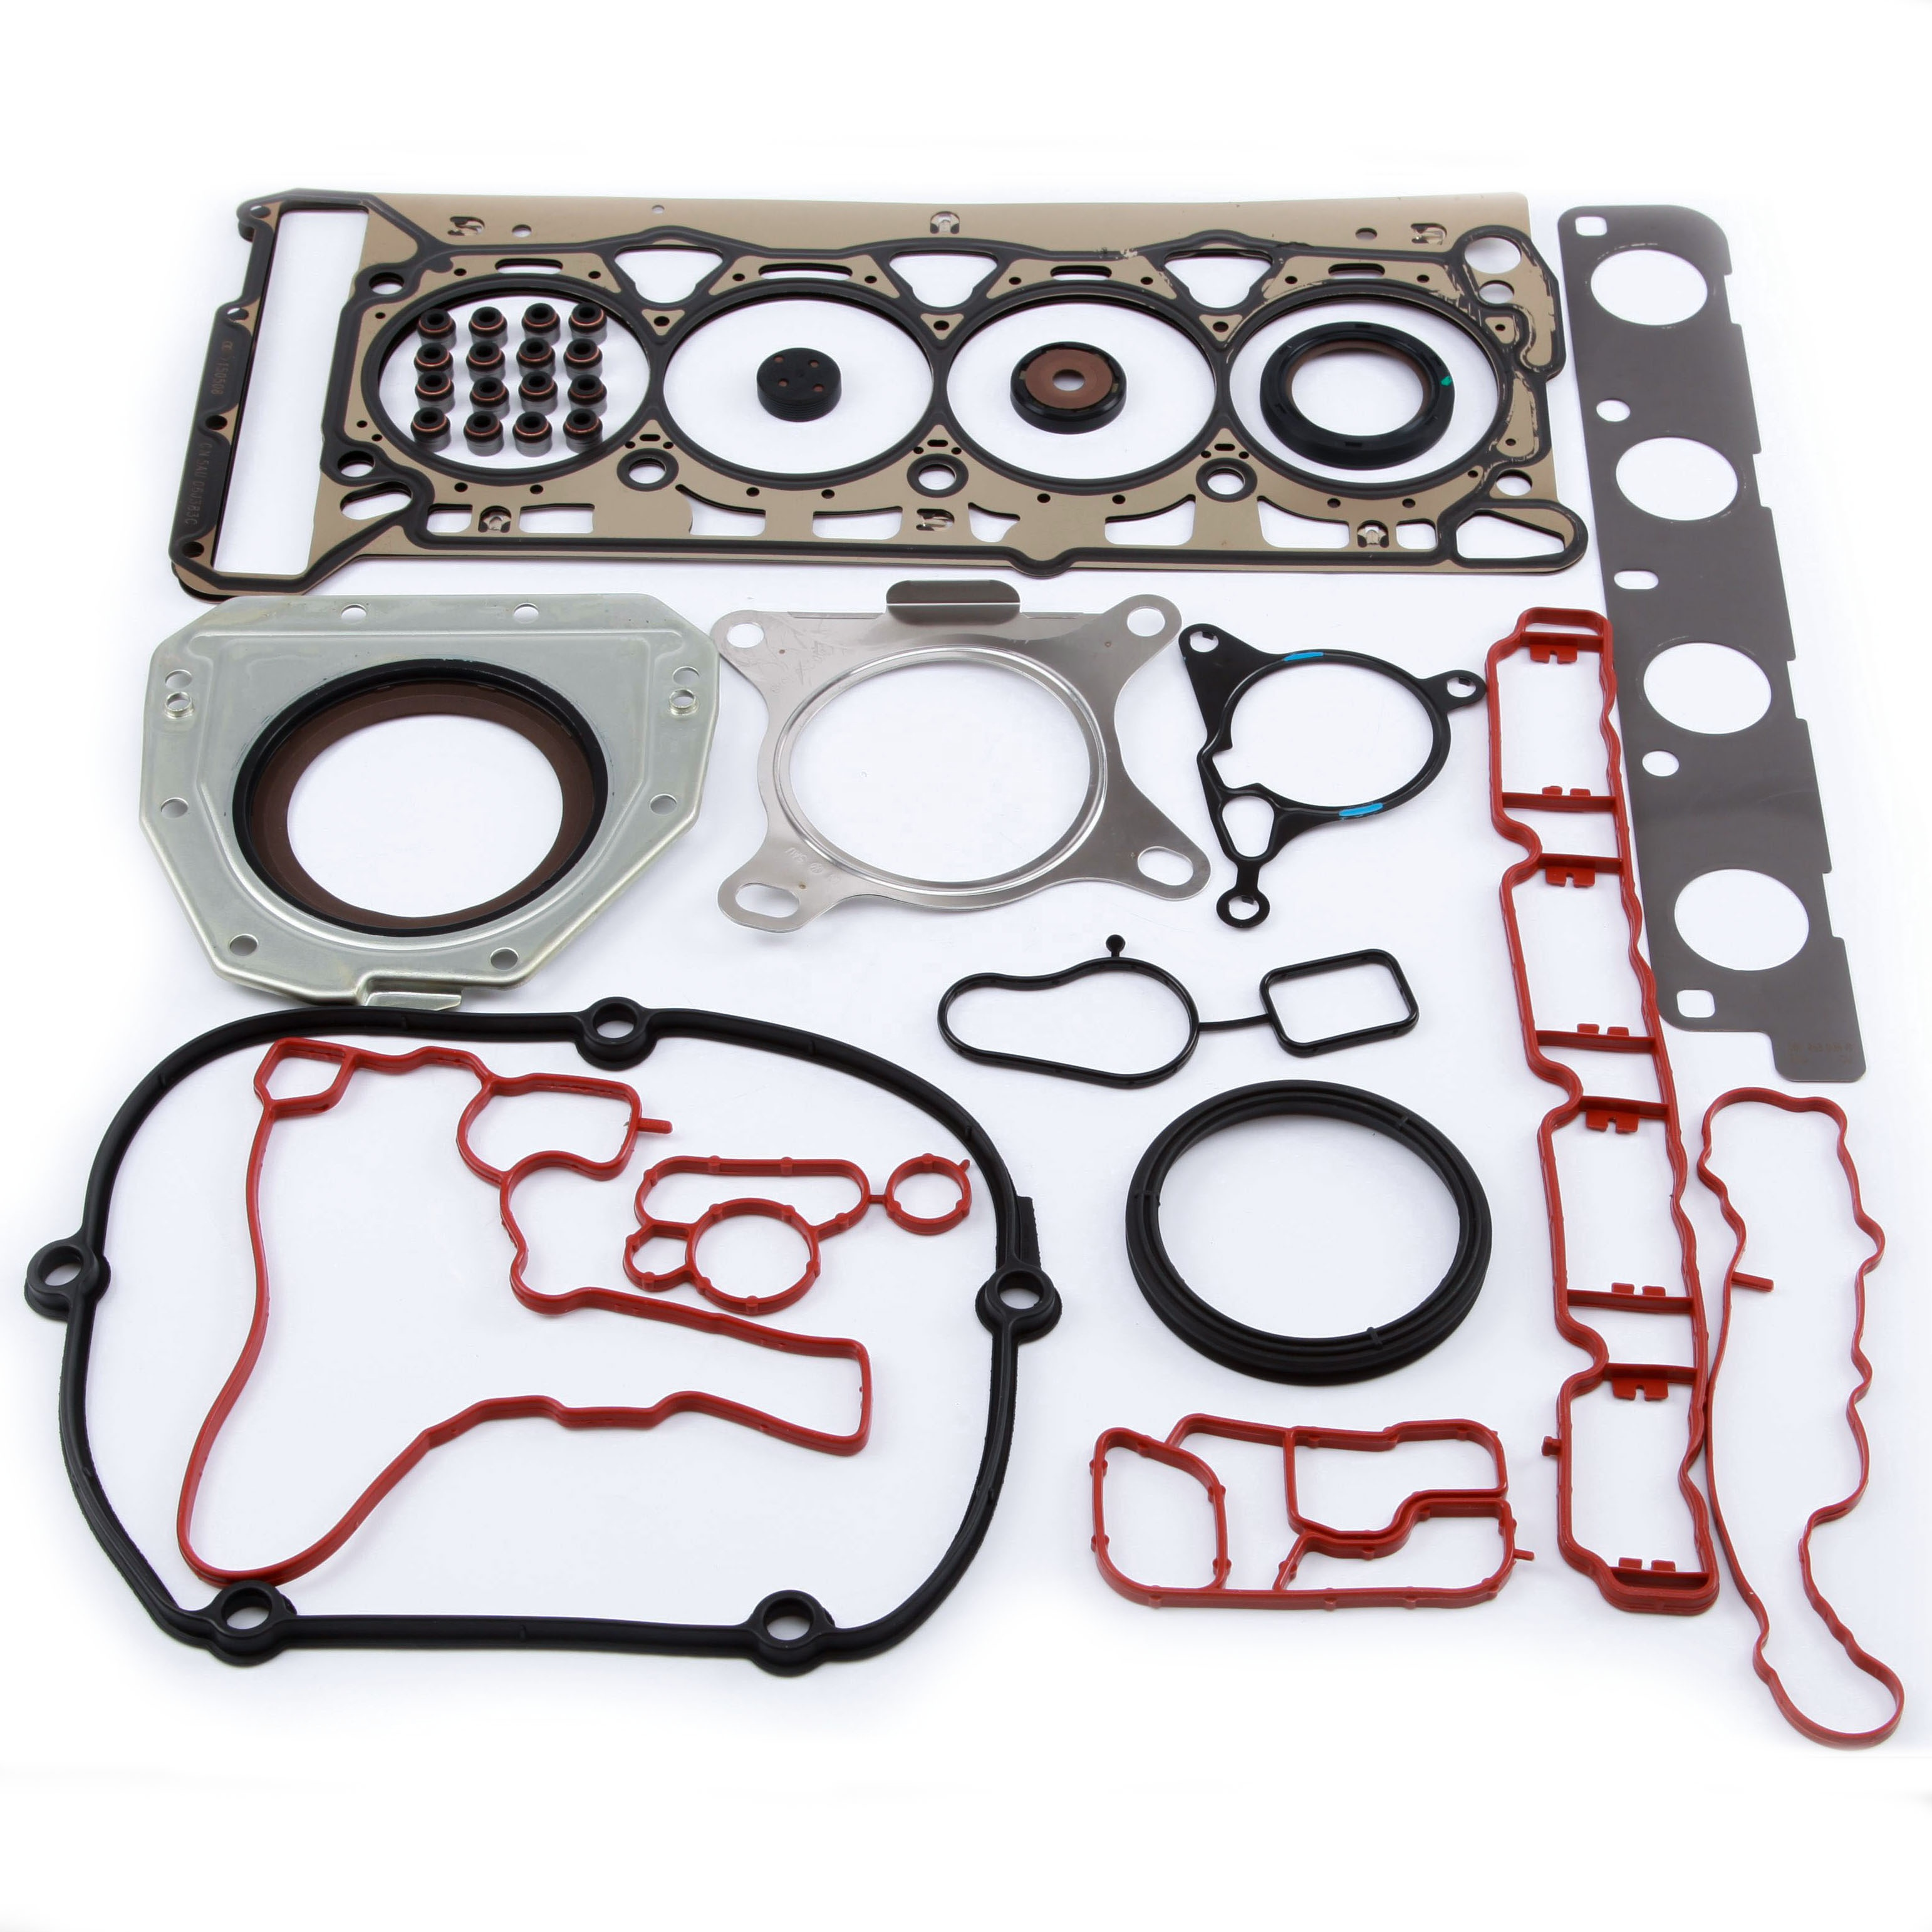 Engine Cylinder Head Gasket Oil Seal <strong>Repair</strong> <strong>Kit</strong> For Auid VW EA888 1.8TFSI 16V 06J103383D 06H103383AD